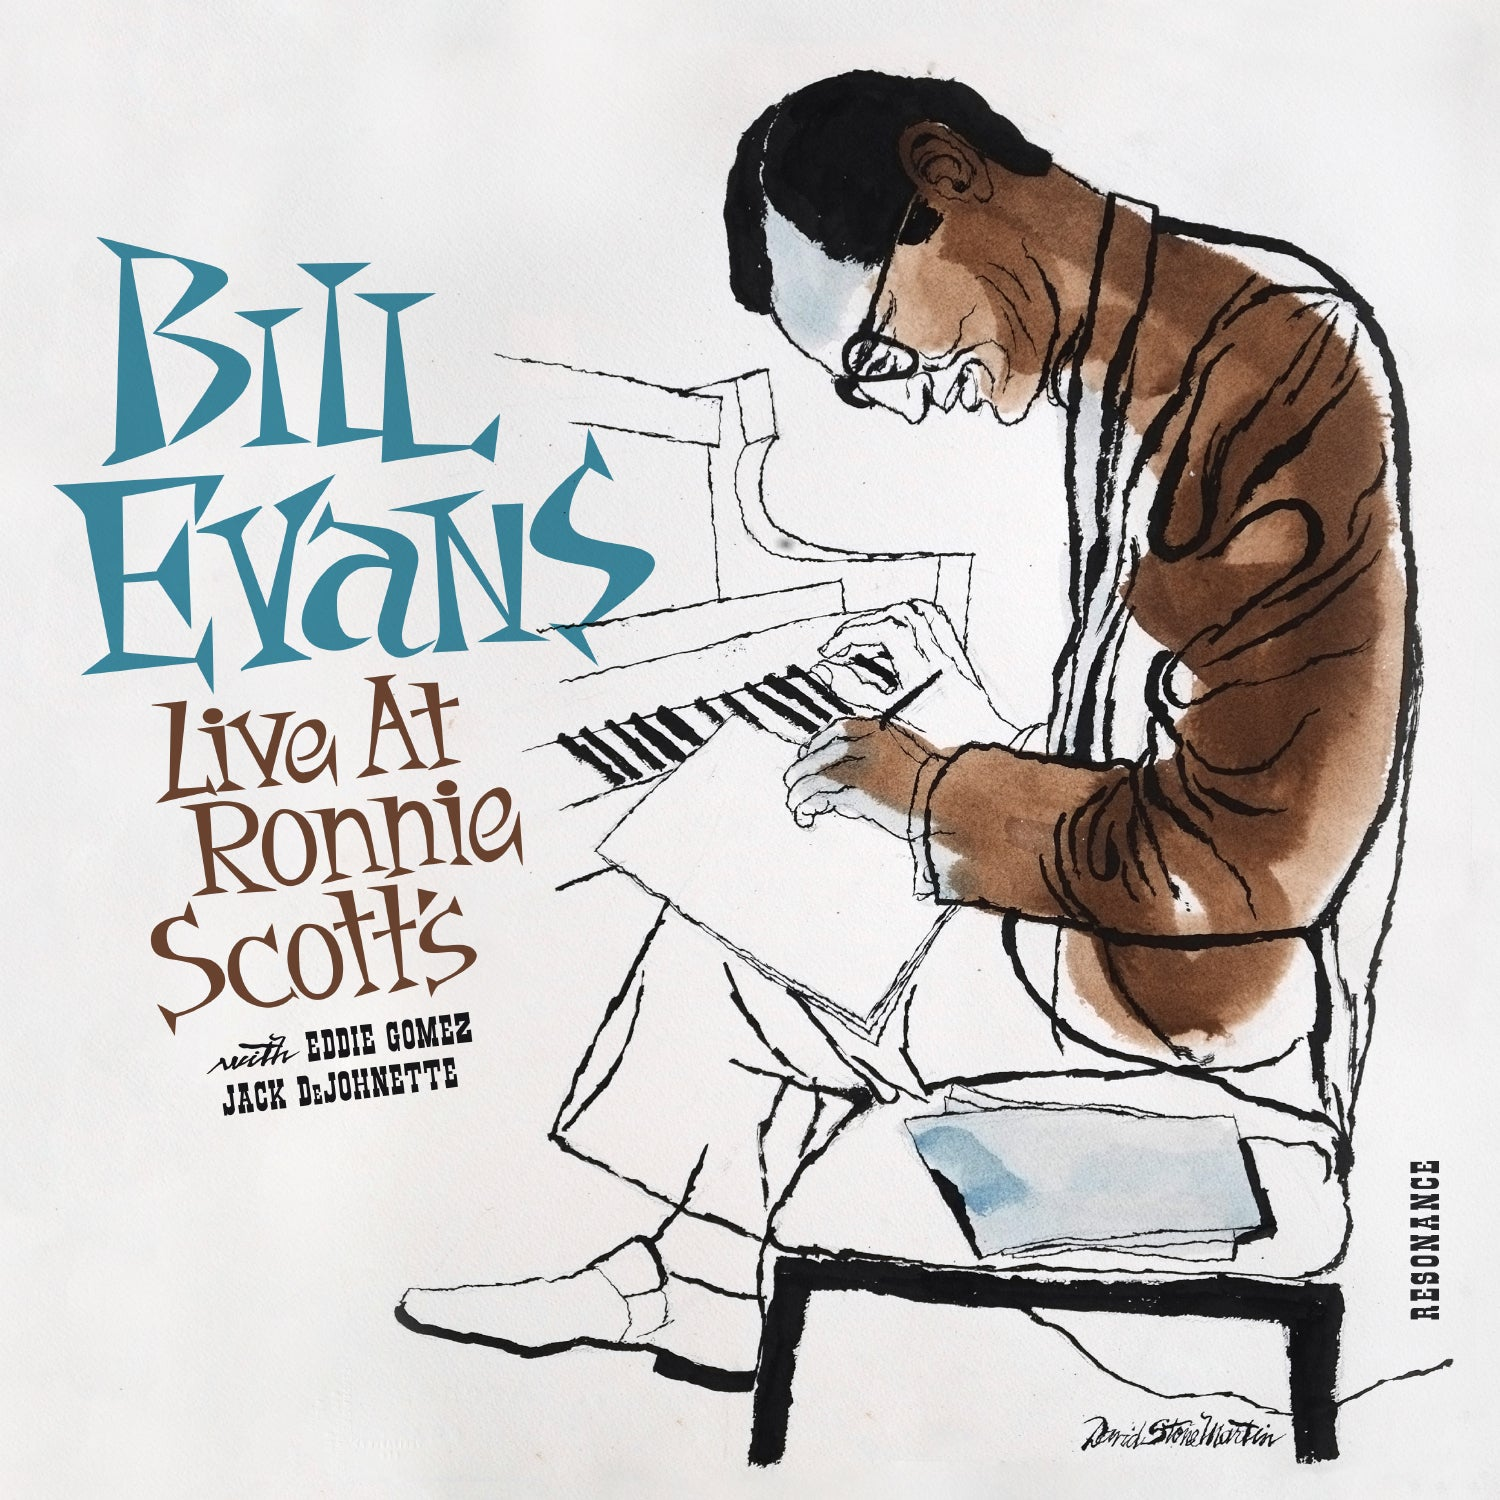 Bill Evans - Live At Ronnie Scott's (RSD 2020 Black Friday) 2LP Vinyl Record Album